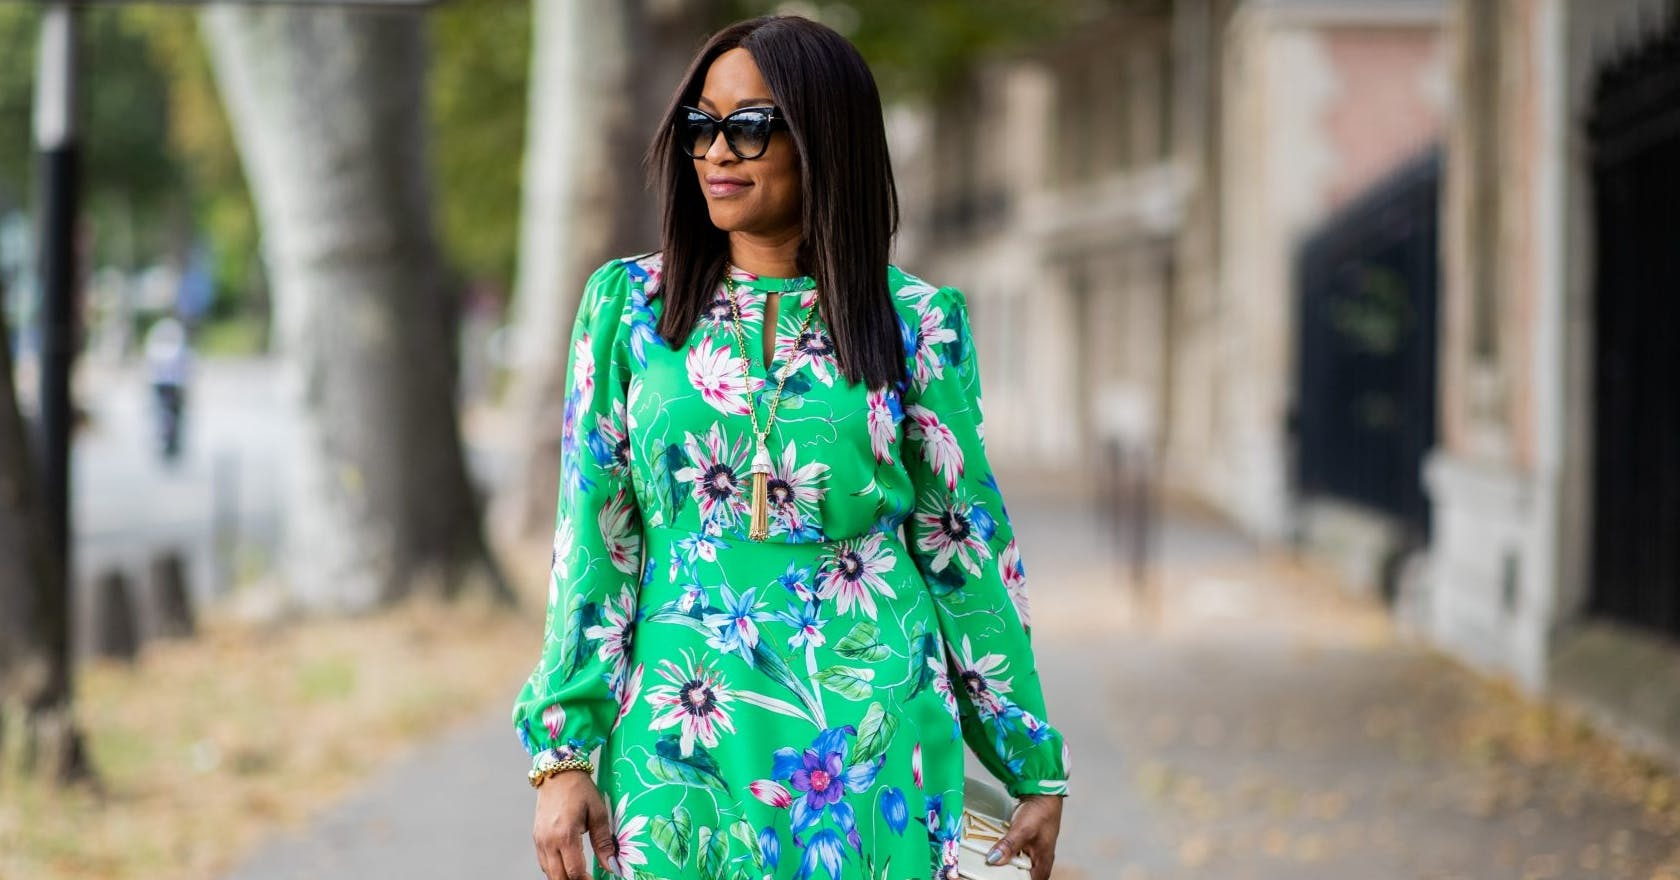 9 of the best printed green dresses to see you through summer in style